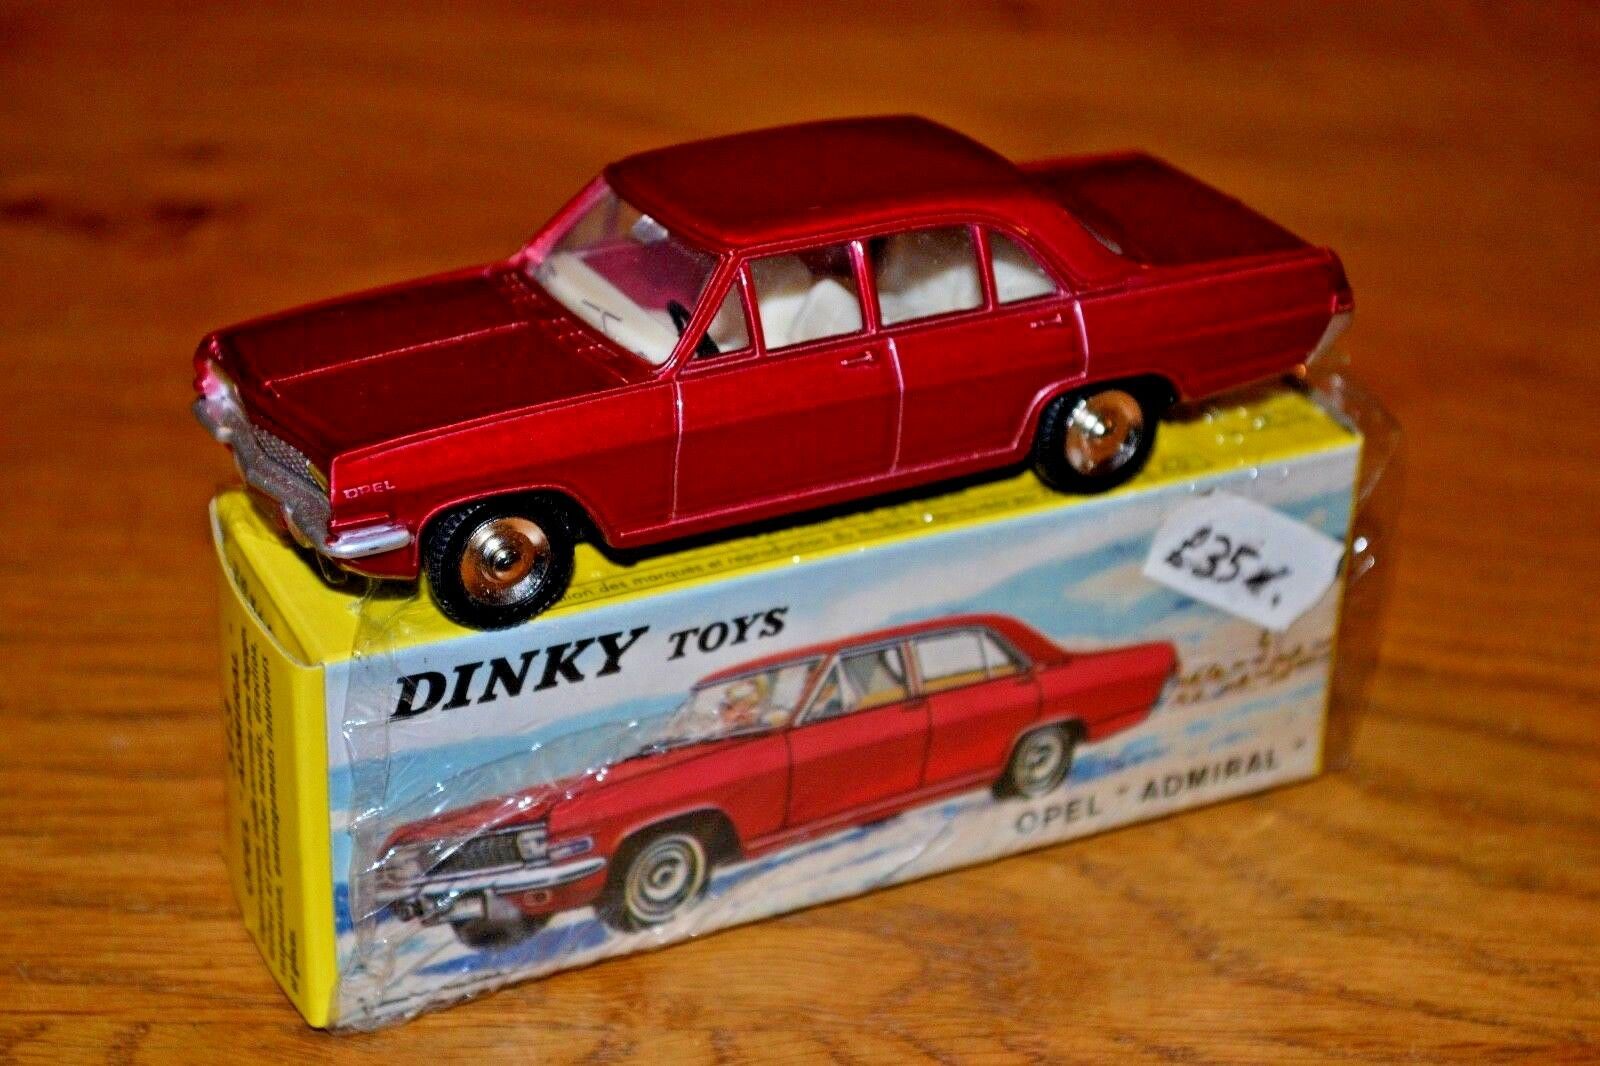 2015 French DINKY TOYS ATLAS EDITION DIECAST No. 513 opel admiral